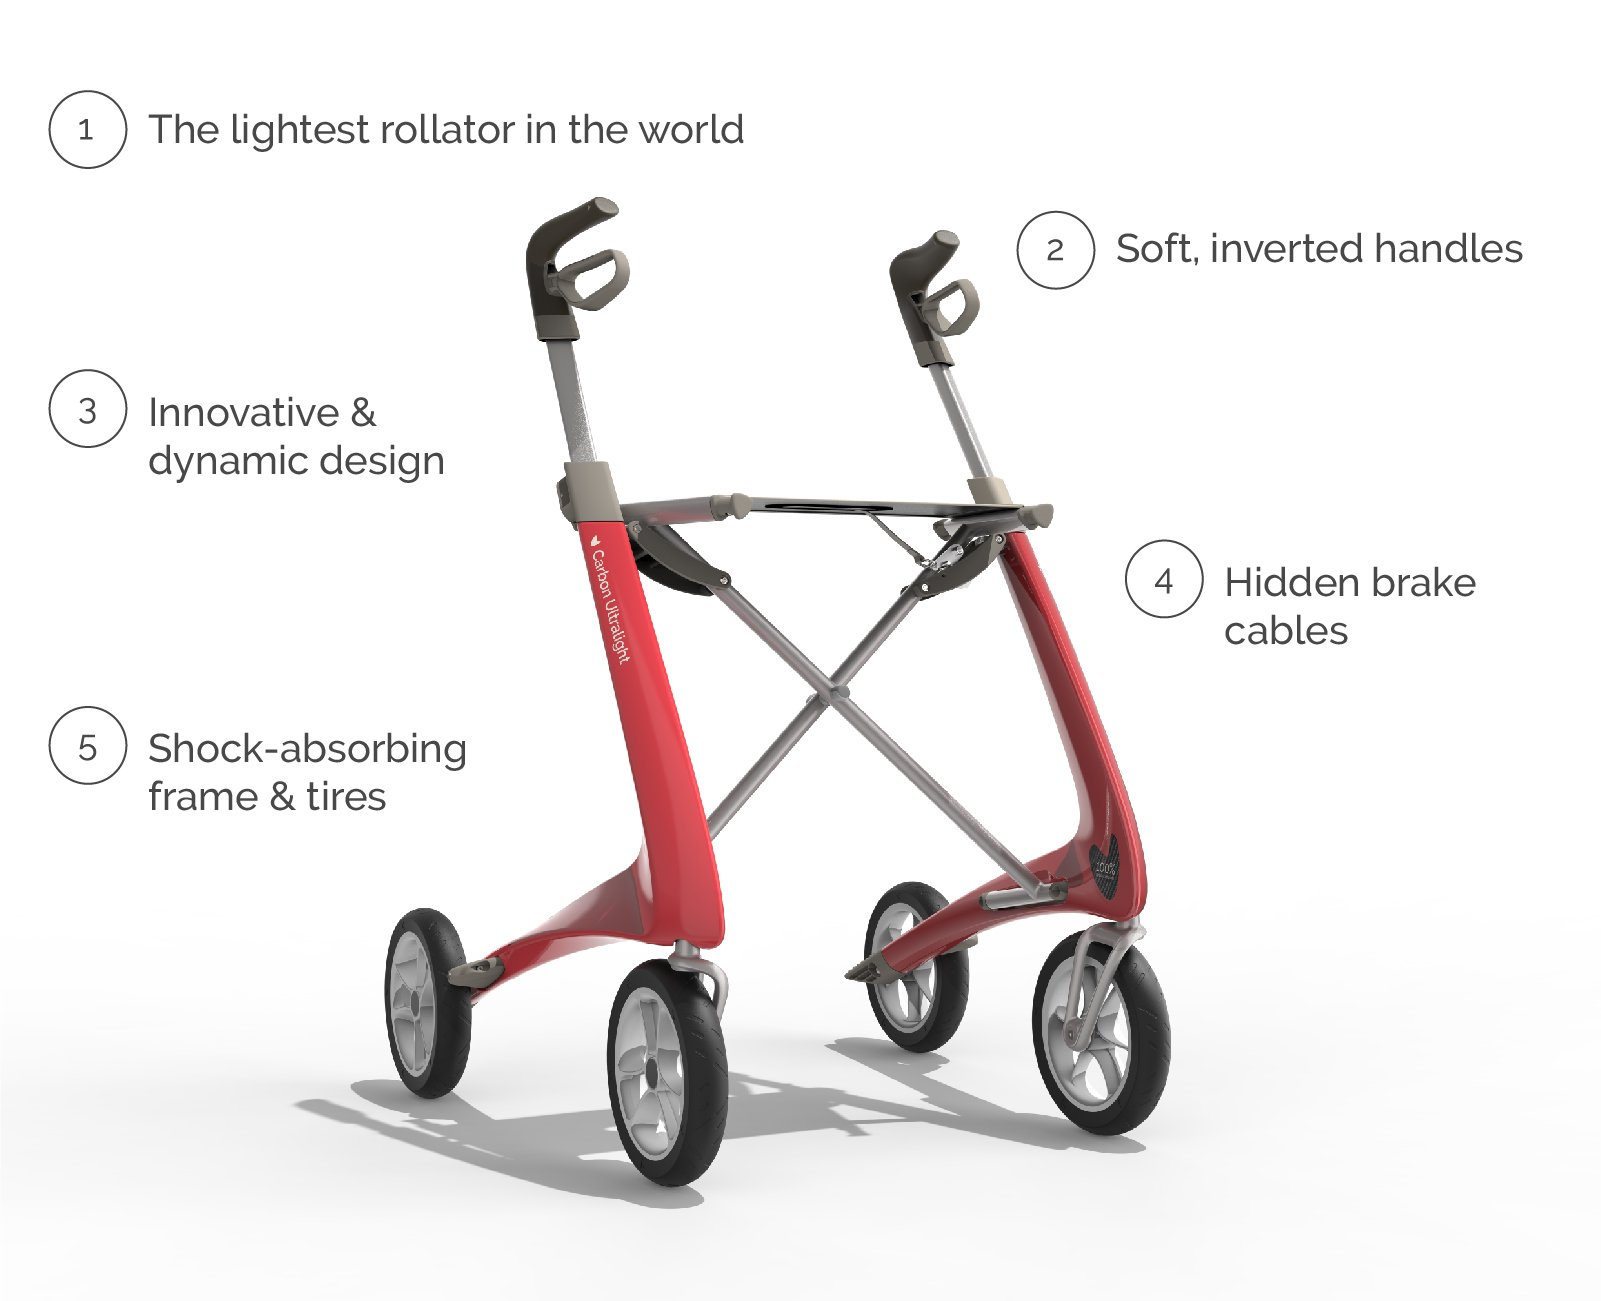 Carbon Ultralight Rollator with text about the 5 key product features